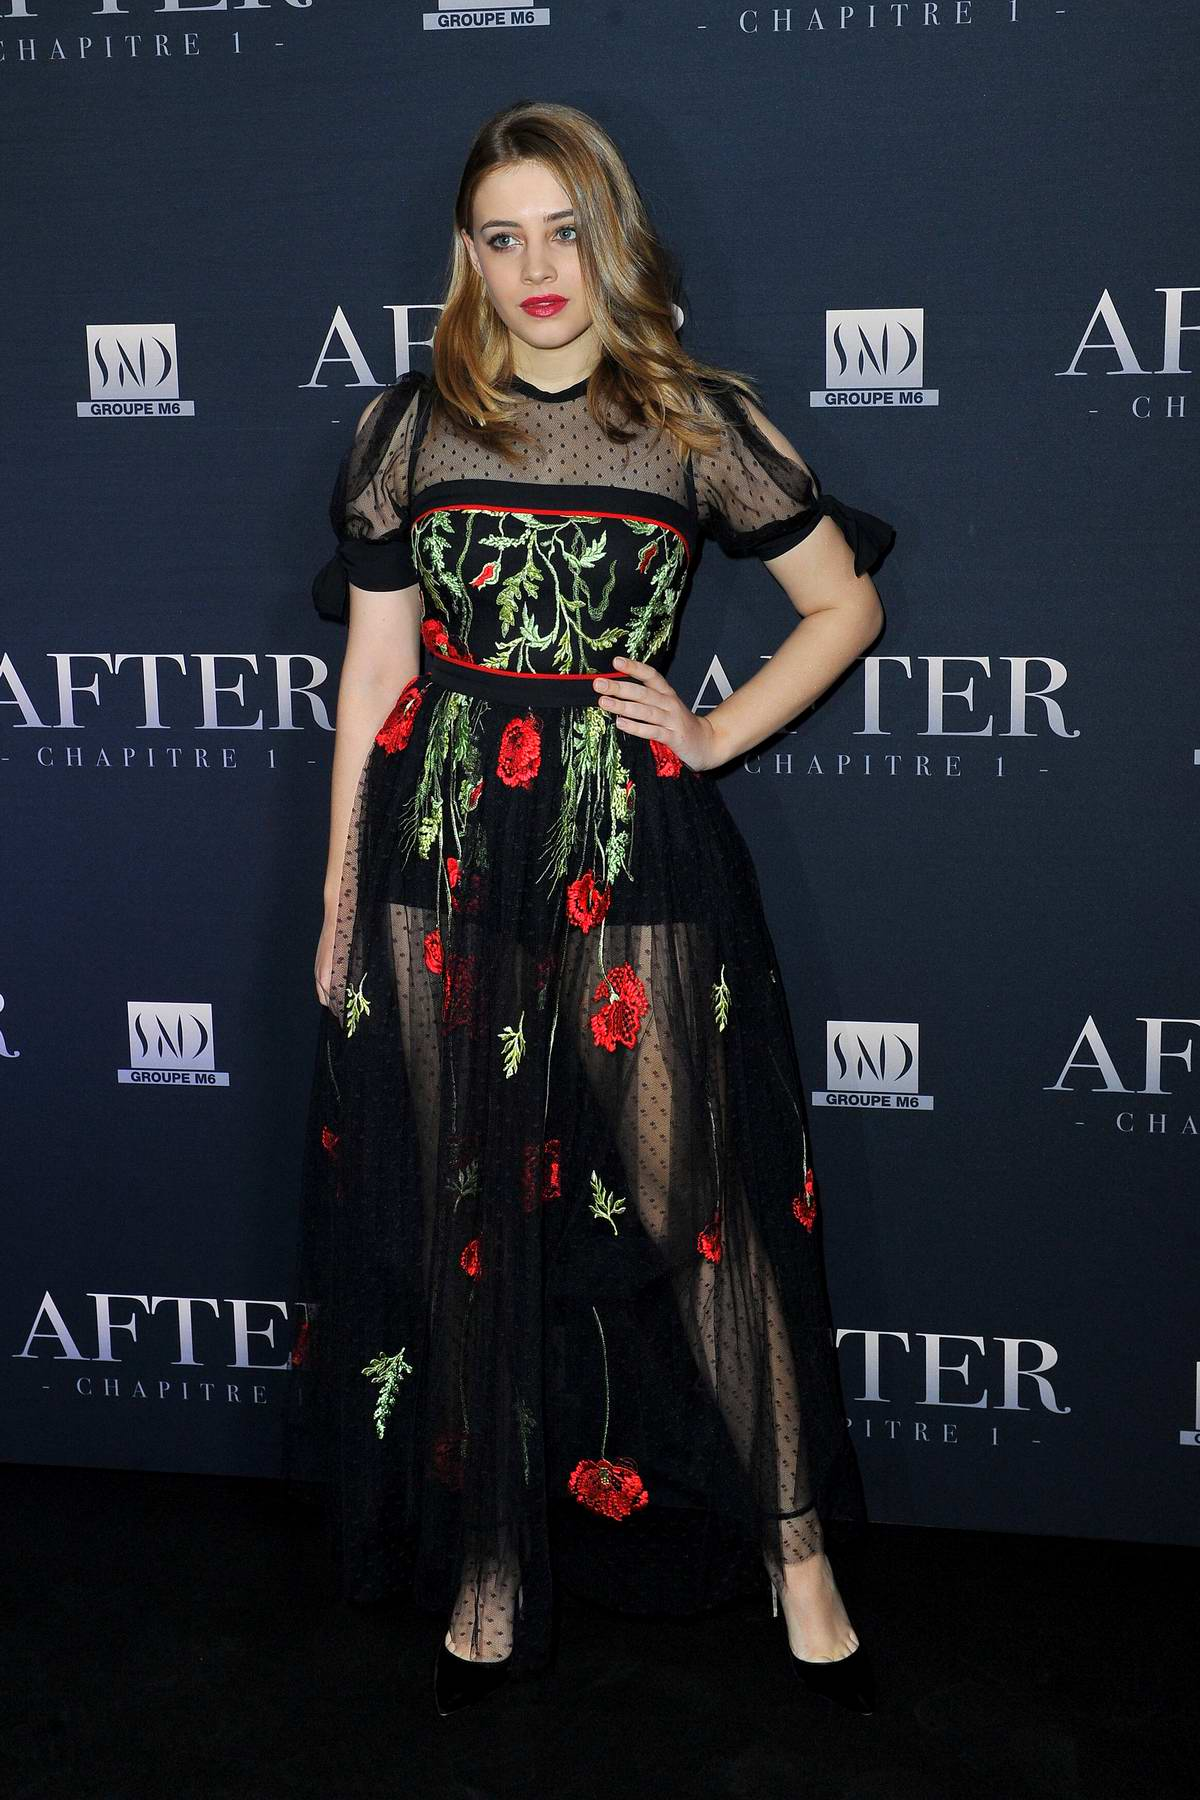 Josephine Langford attends 'After - Chapter 1' movie premiere at the Hotel Royal Monceau in Paris, France